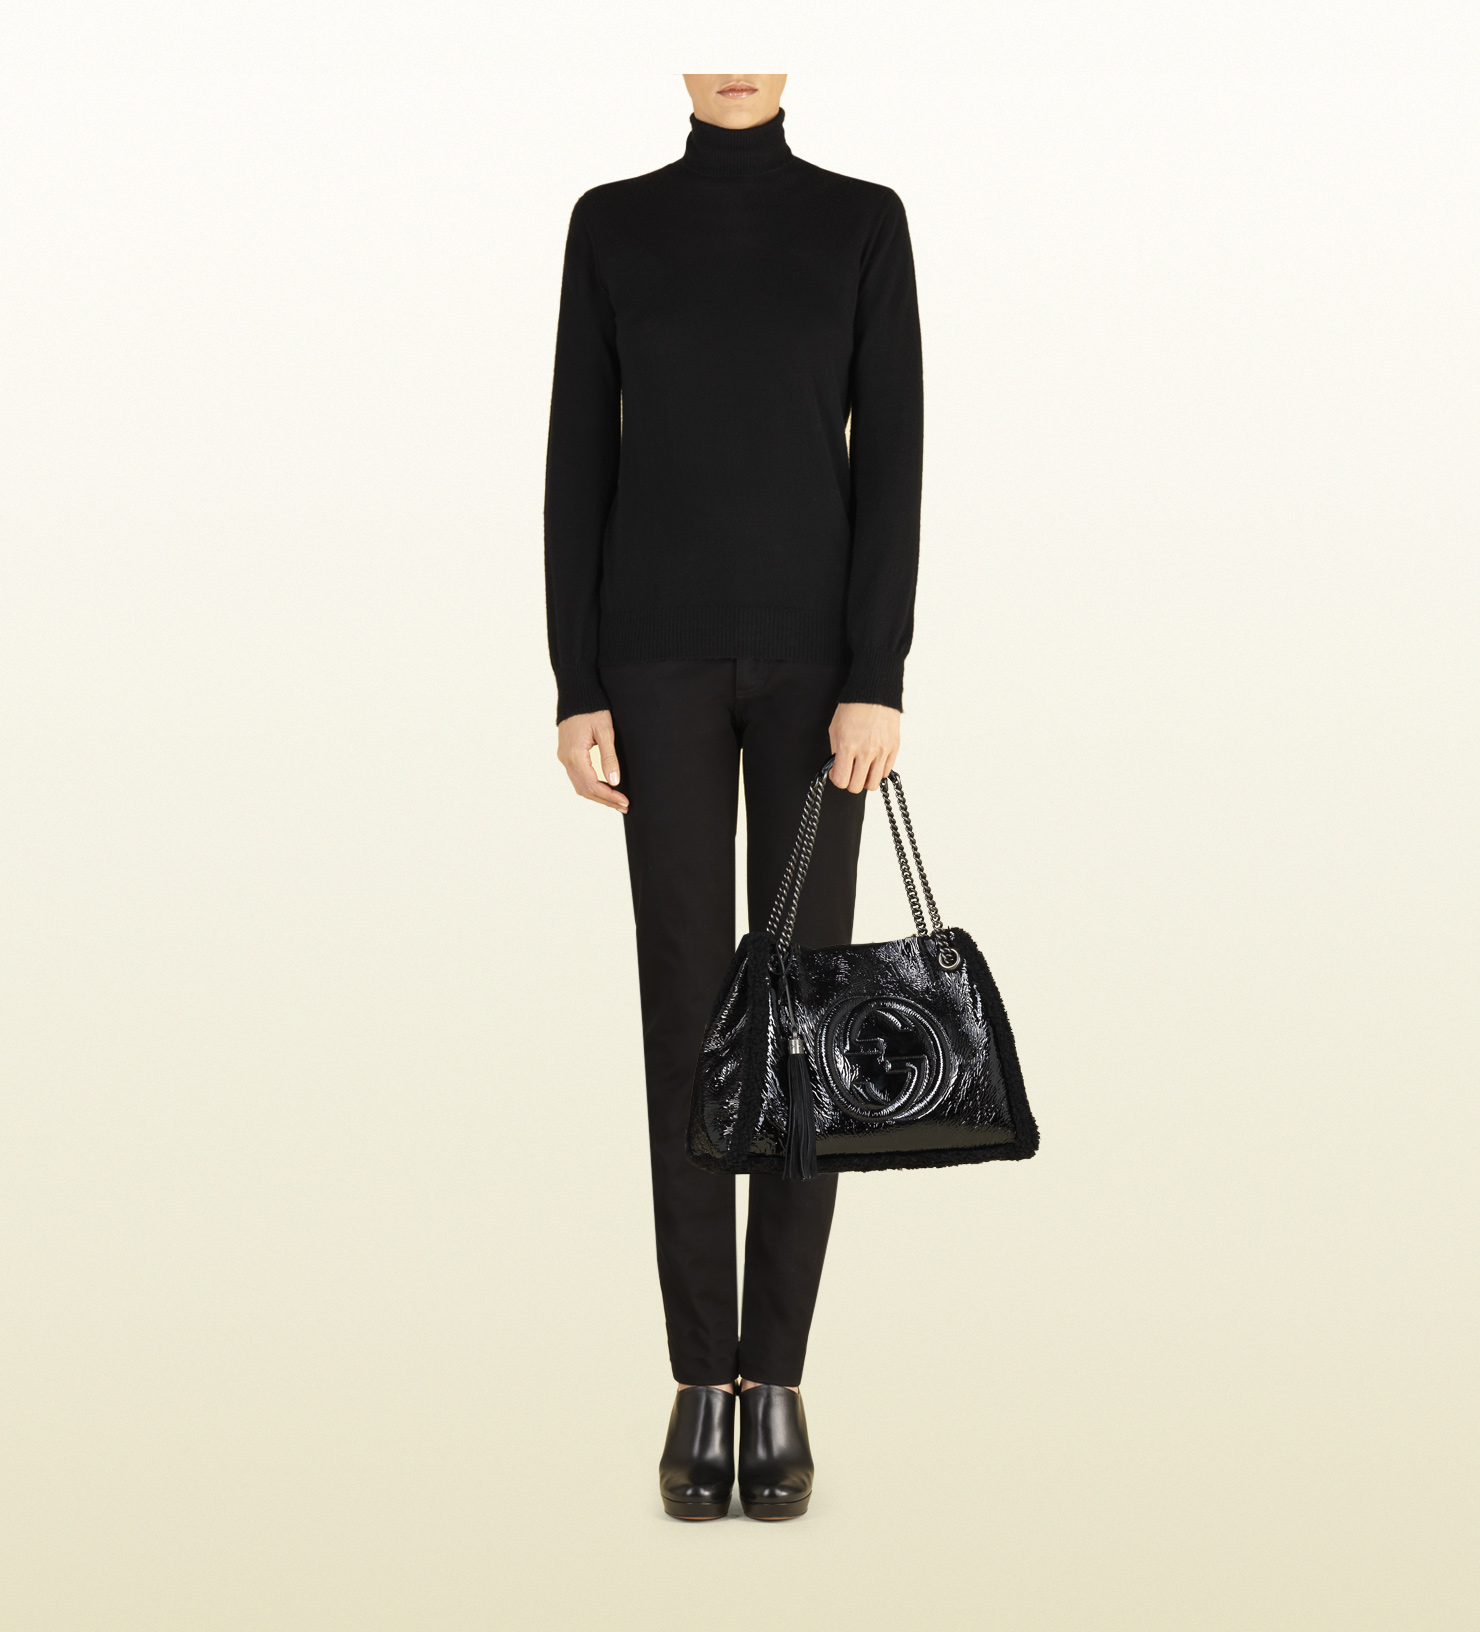 d4a50ee4627 Lyst - Gucci Soho Crushed Patent Leather Shoulder Bag in Black